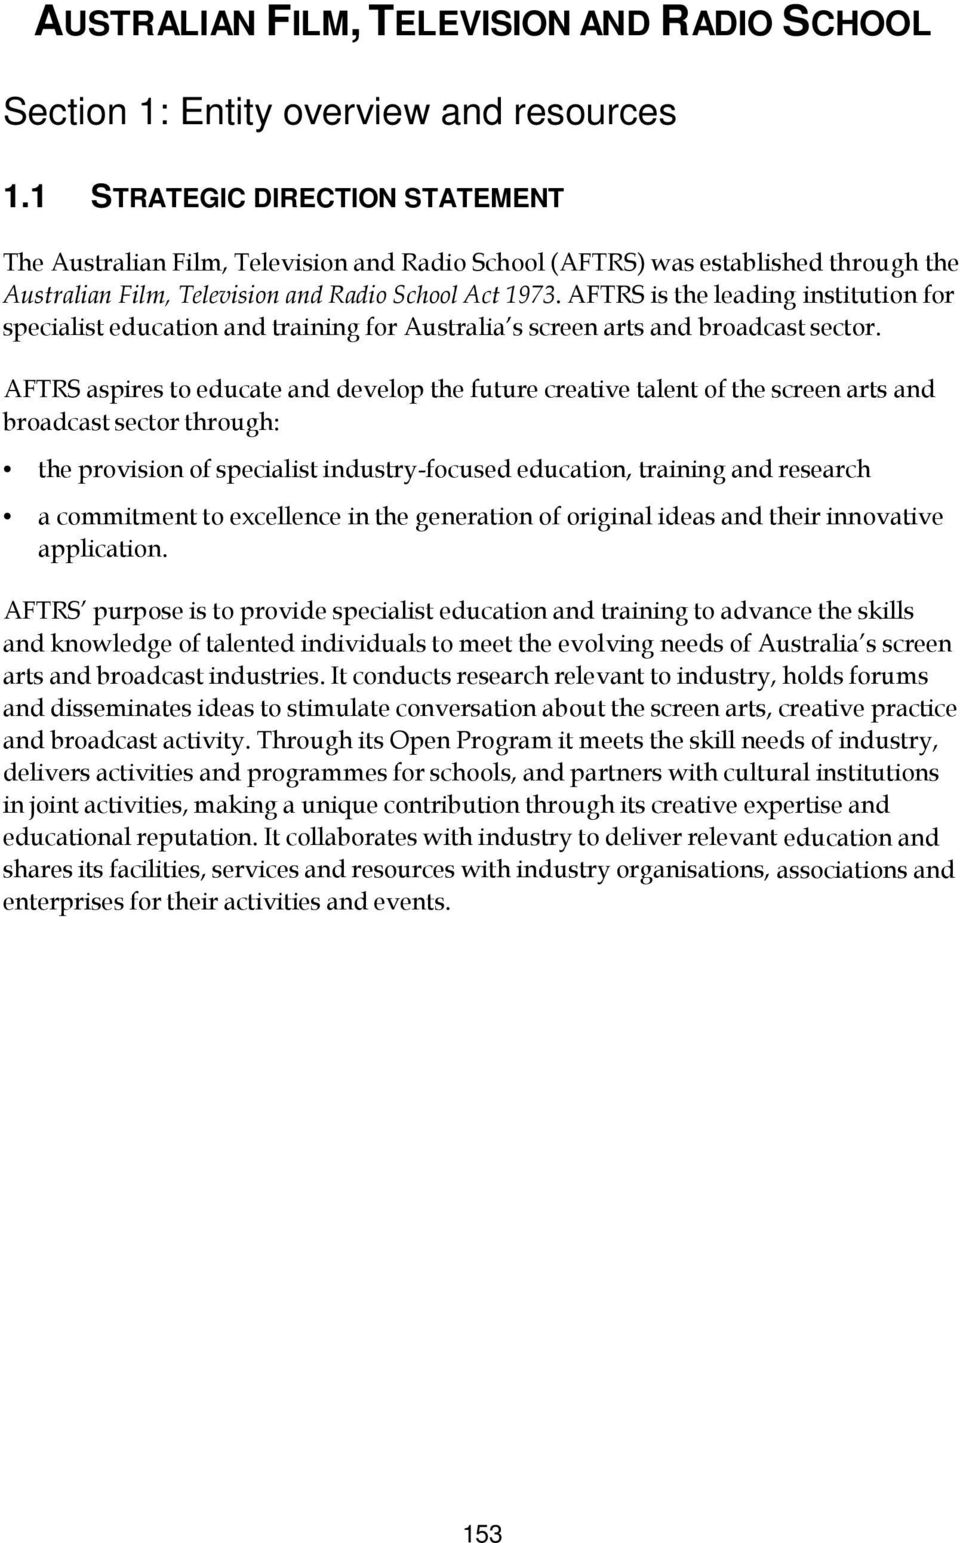 AFTRS is the leading institution for specialist education and training for Australia s screen arts and broadcast sector.